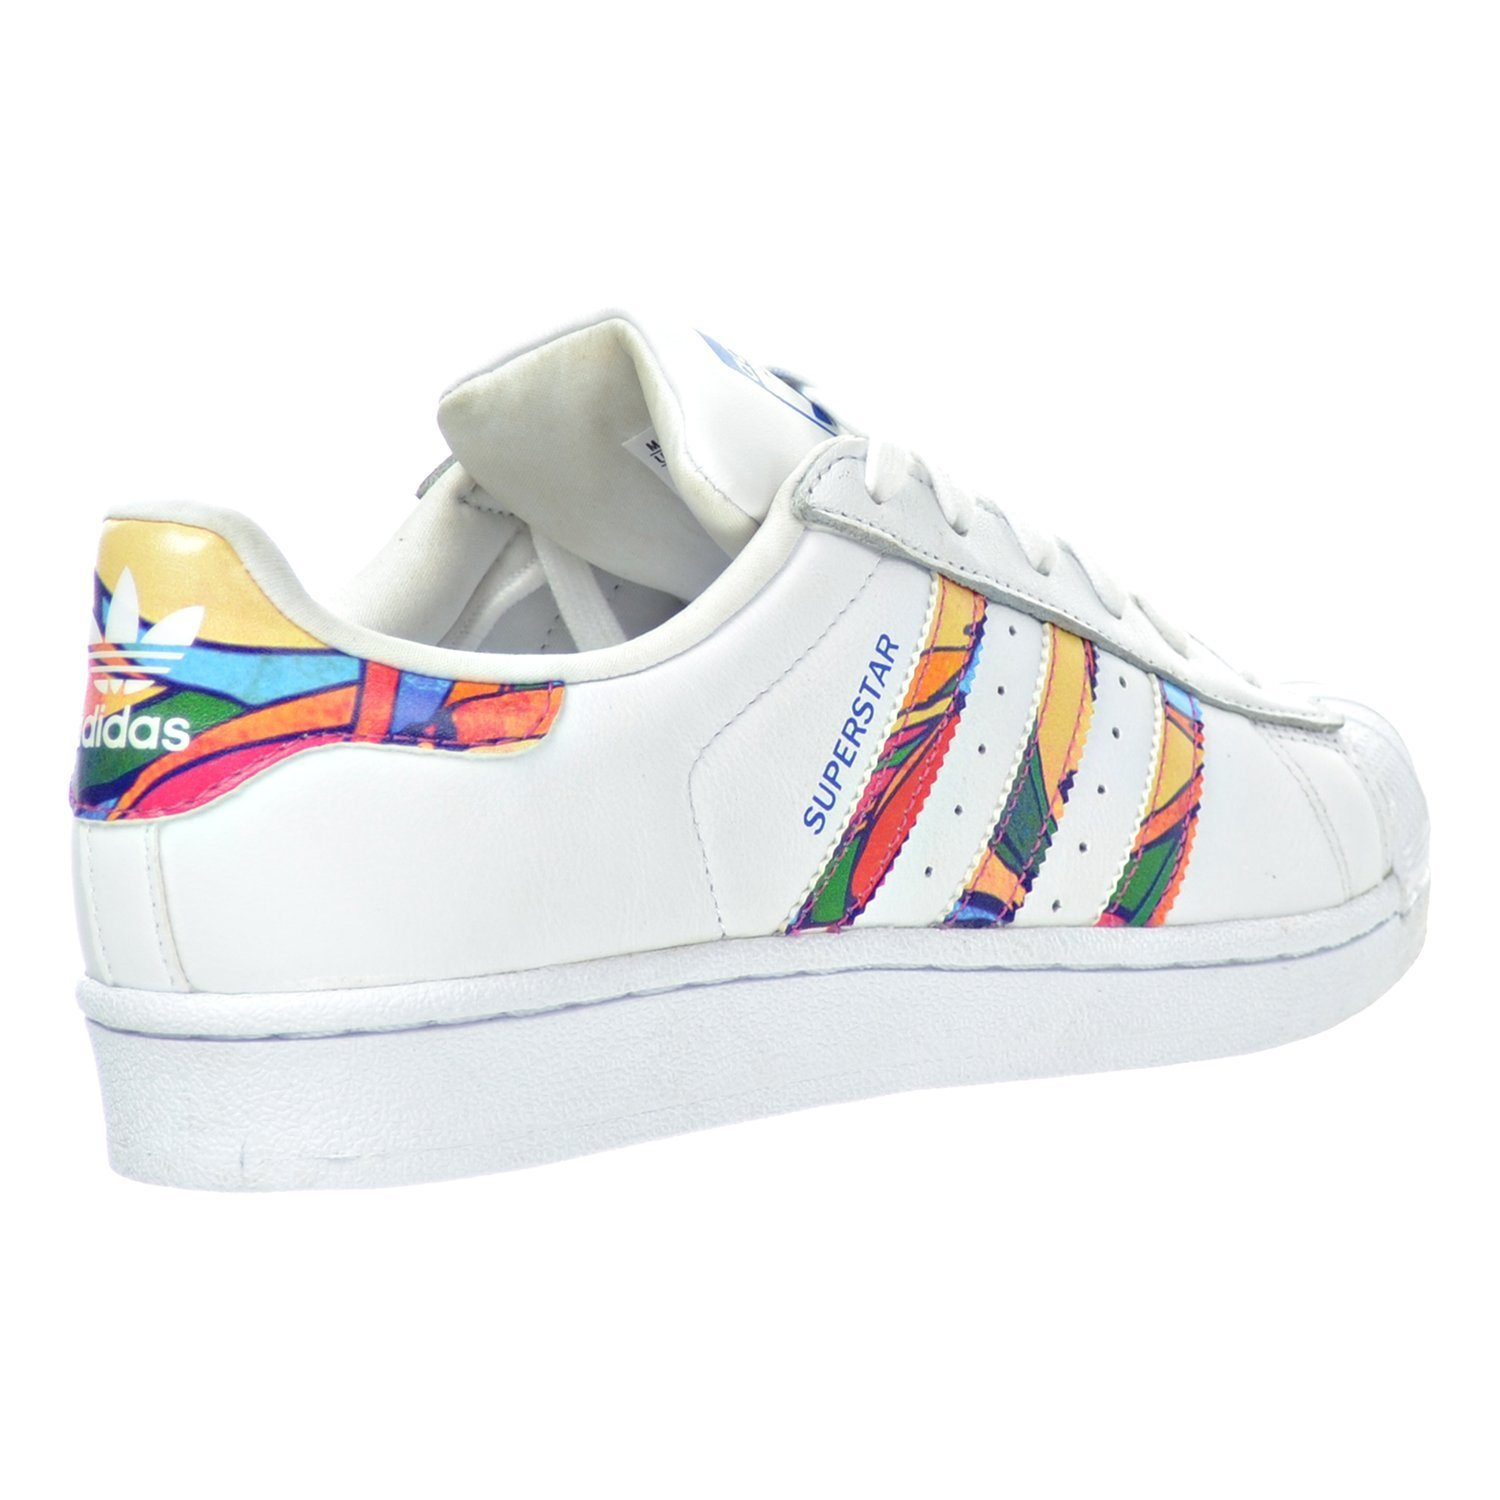 adidas superstar multicolore